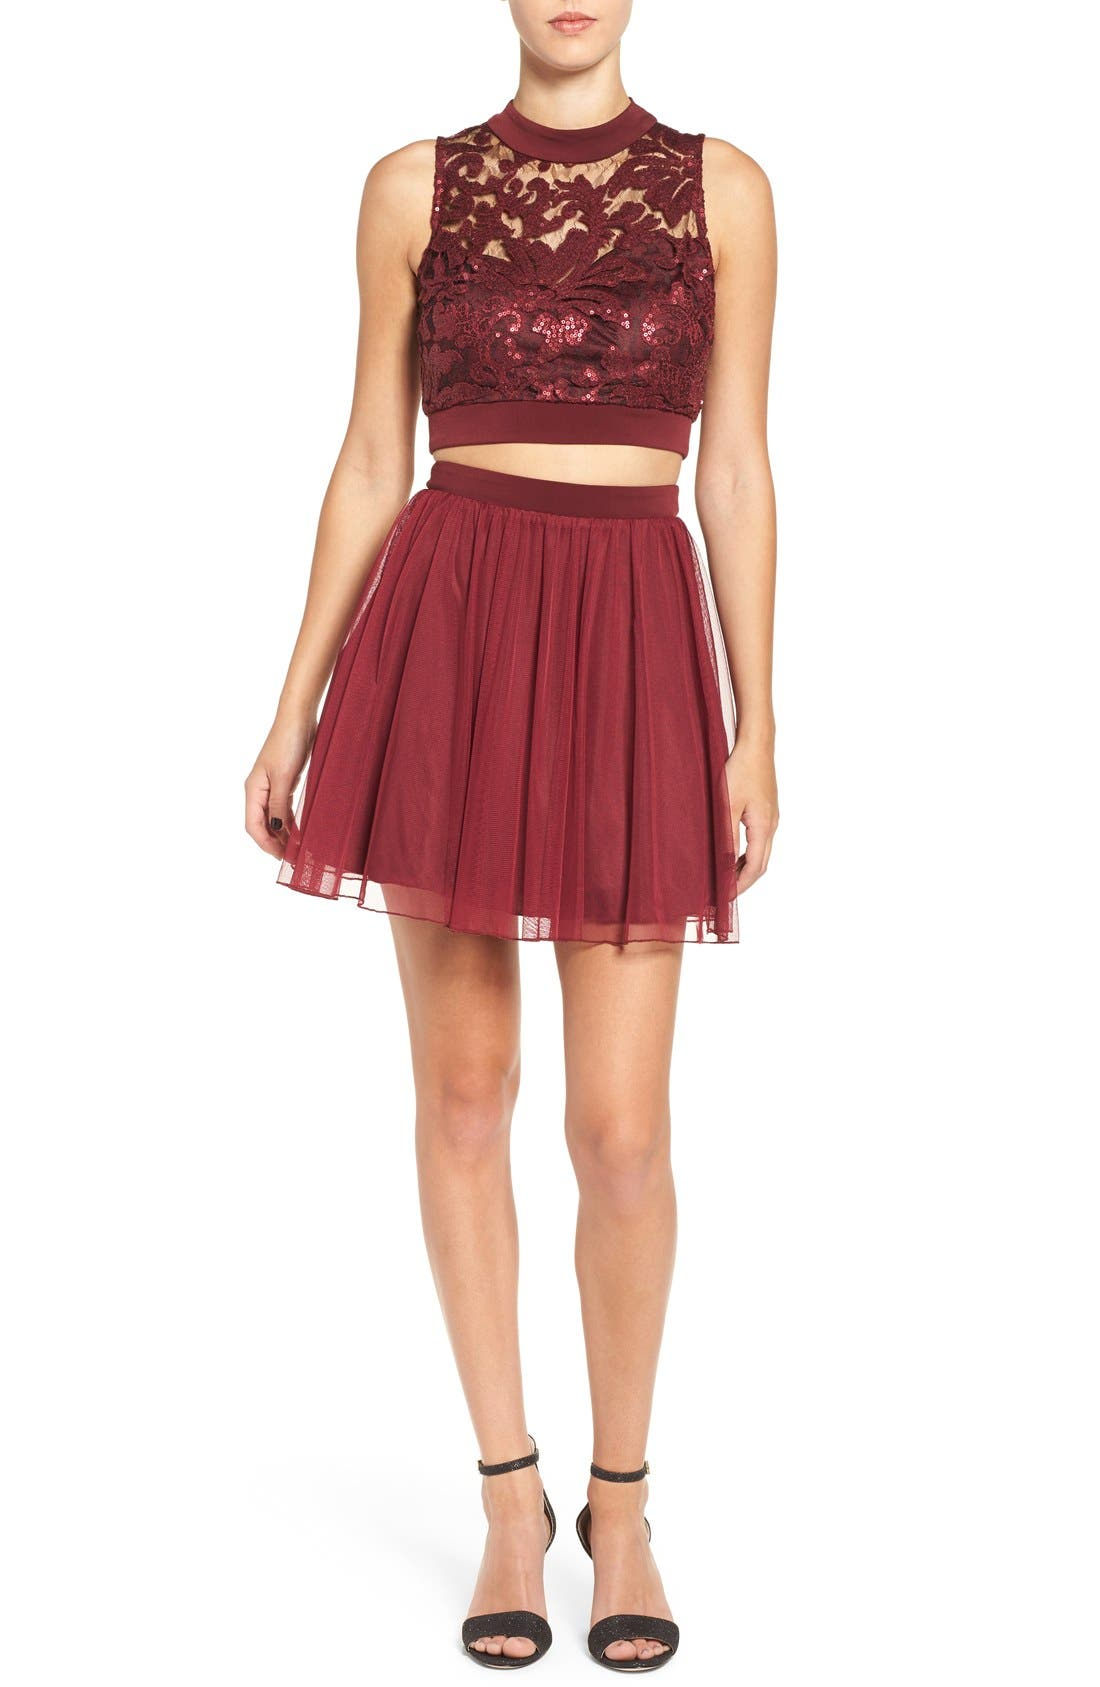 Alternate Image 1 Selected - Speechless Sequin Lace Two-Piece Dress